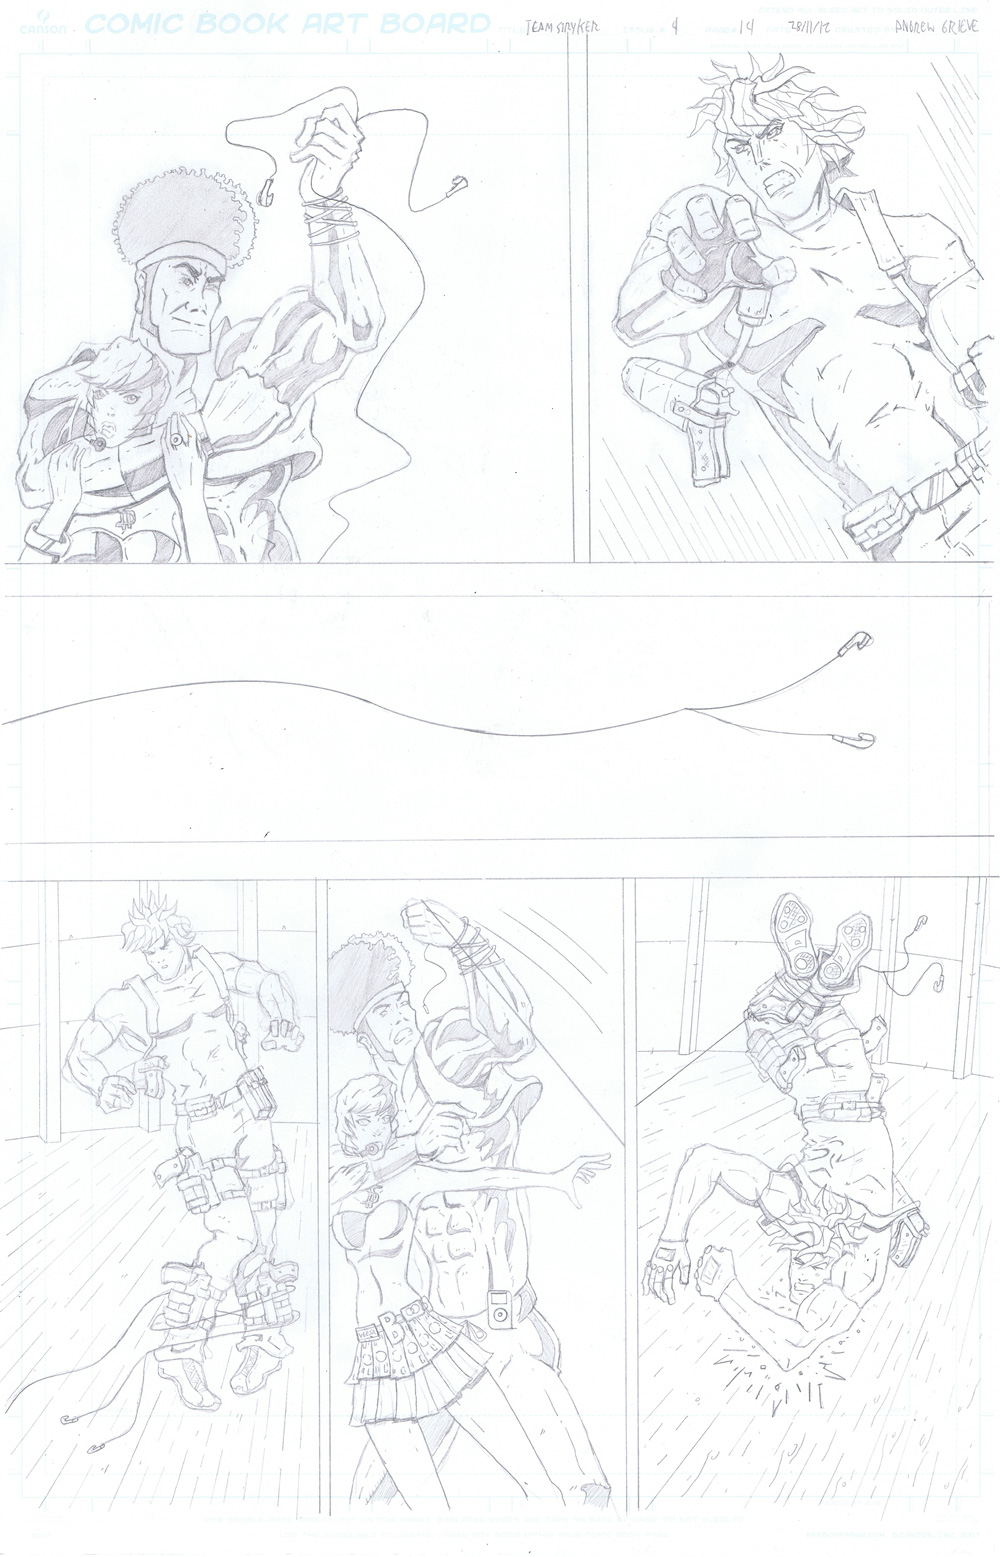 MISSION 004: PAGE 14 PENCIL